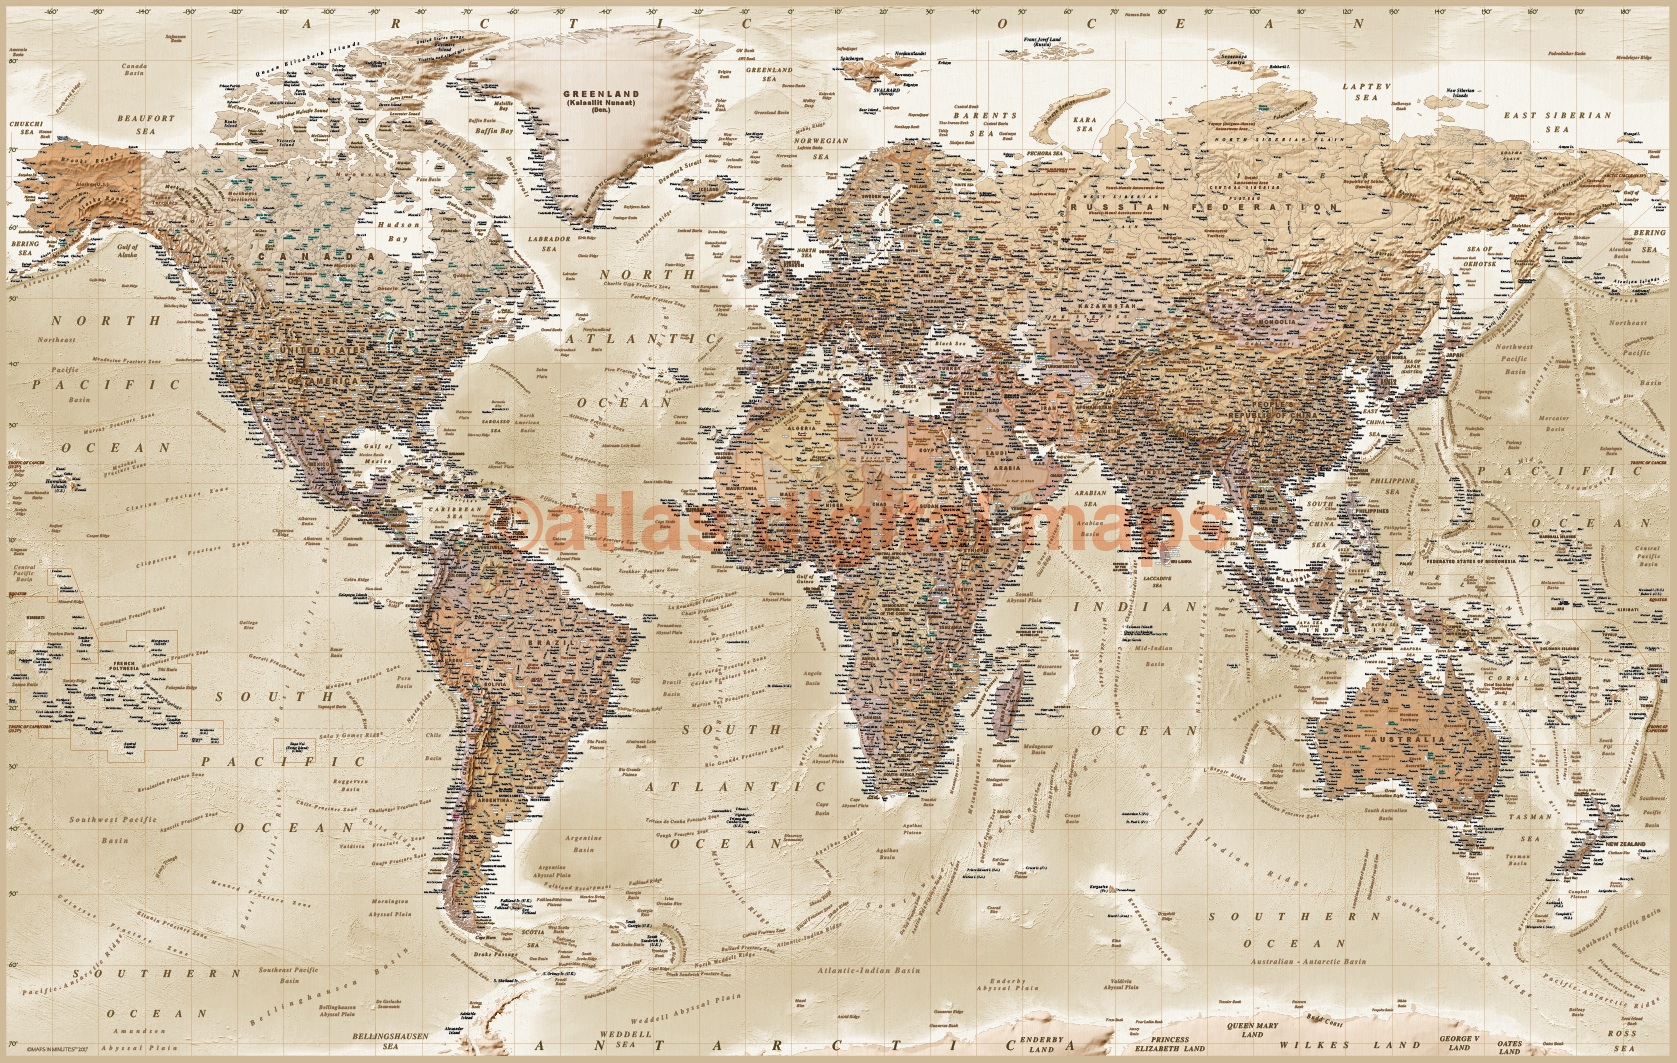 Rolled Canvas World Wall Map Tan and Sand with Bold text